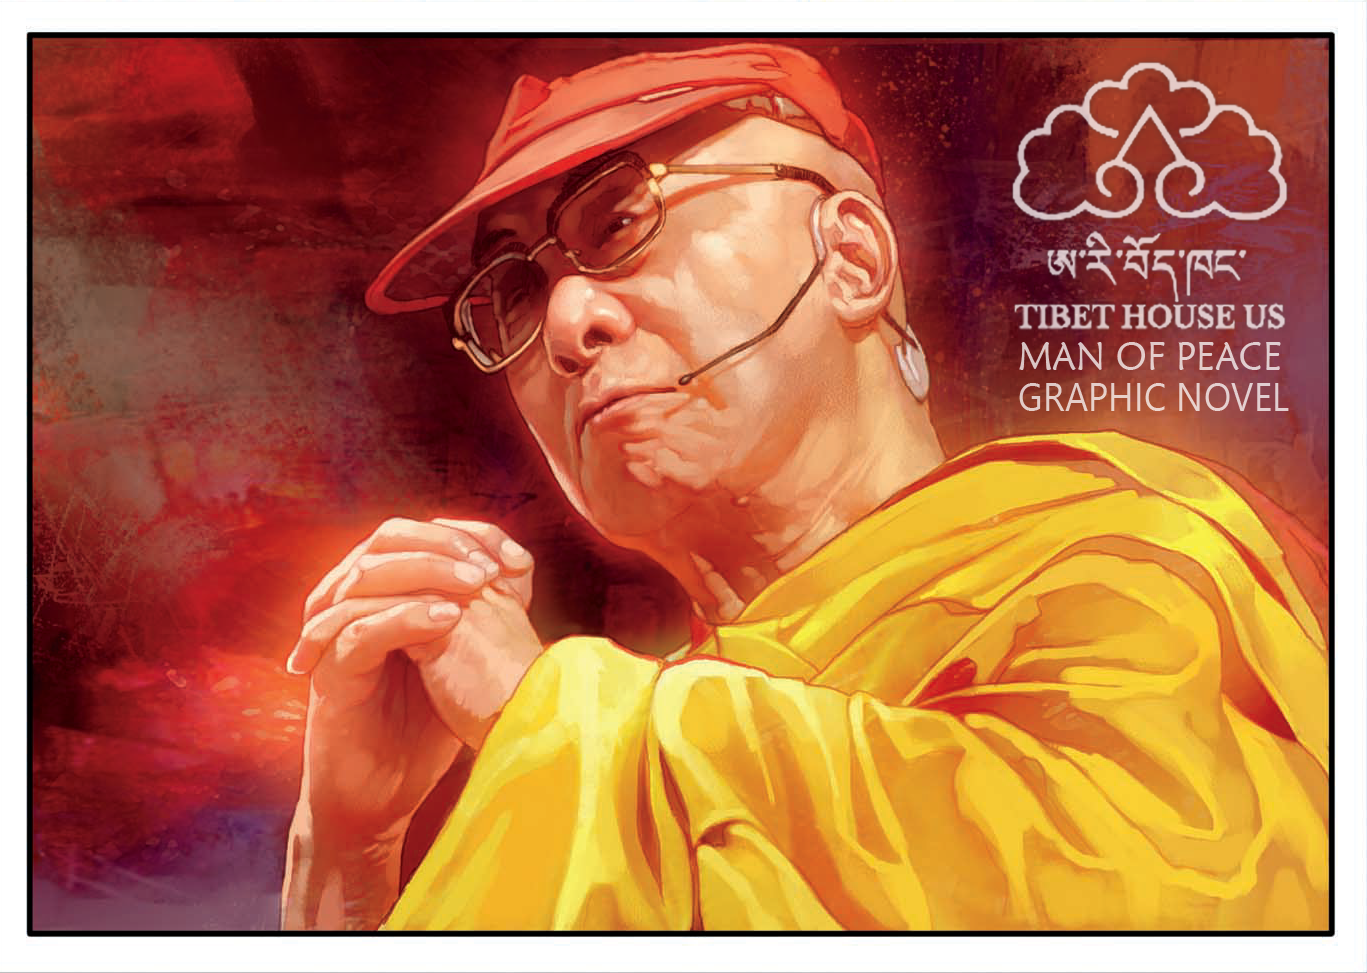 Man of Peace: Illustrated Life of Dalai Lama